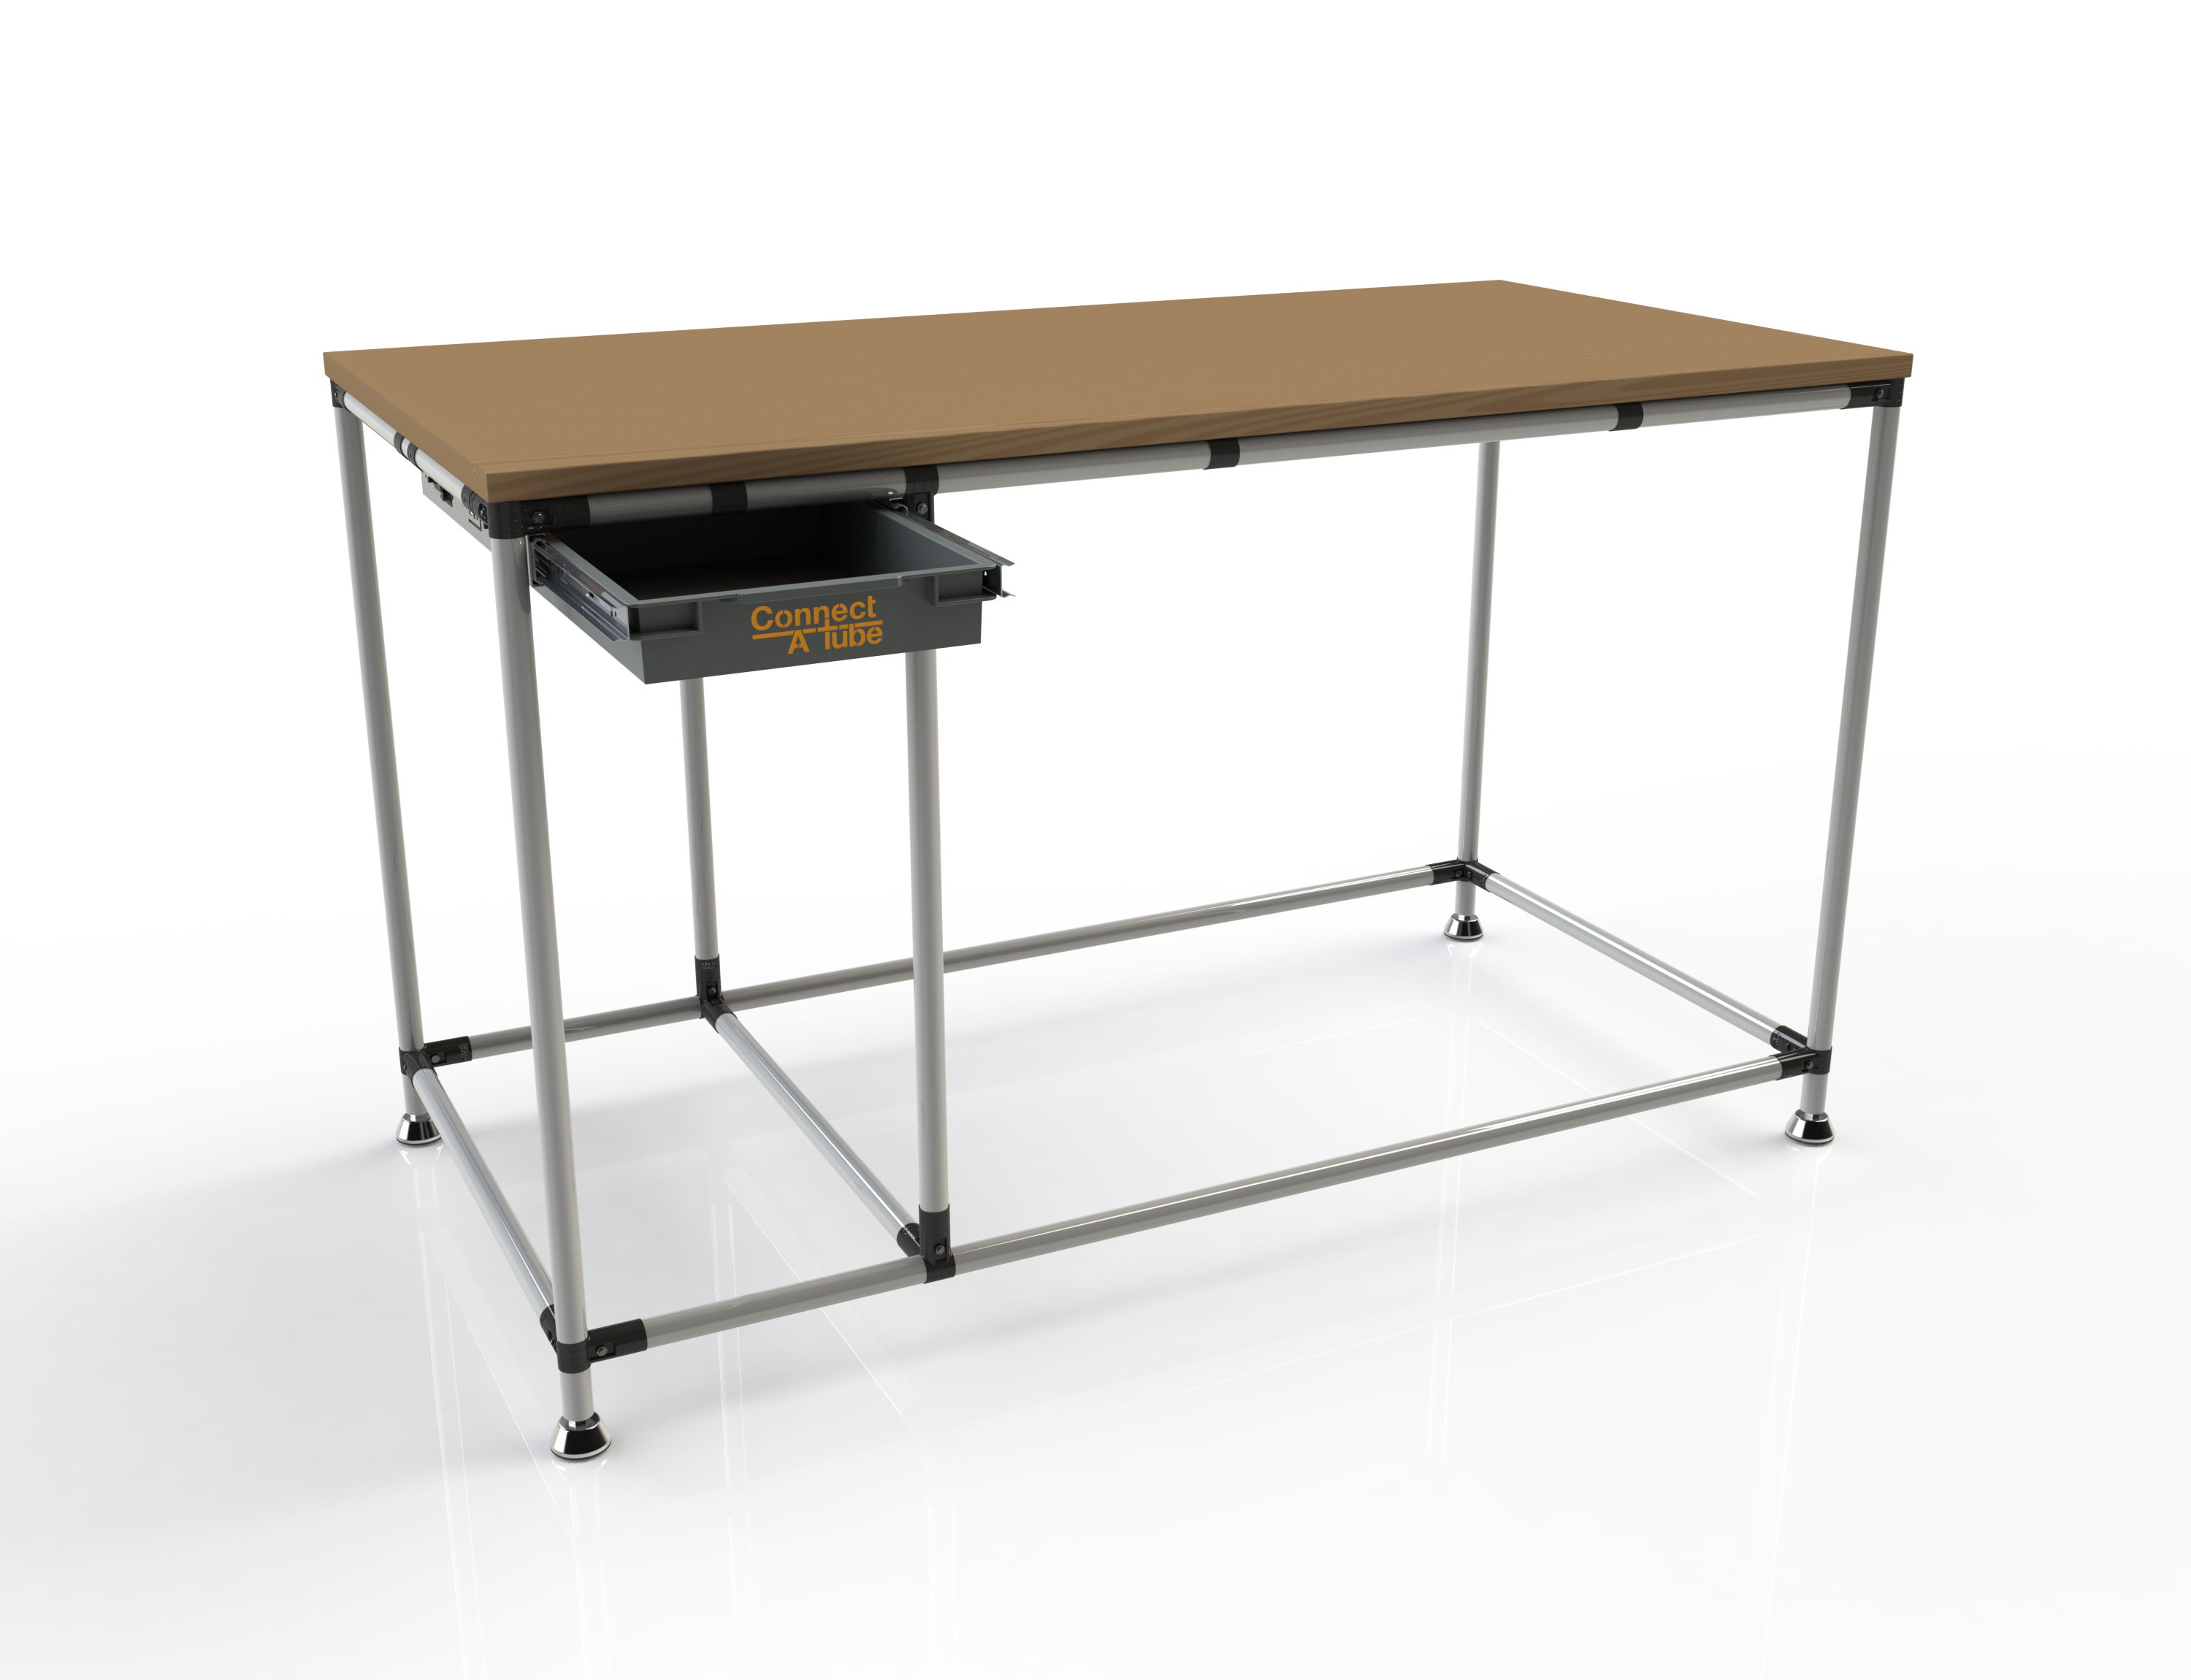 Stainless steel frame industrial workstations